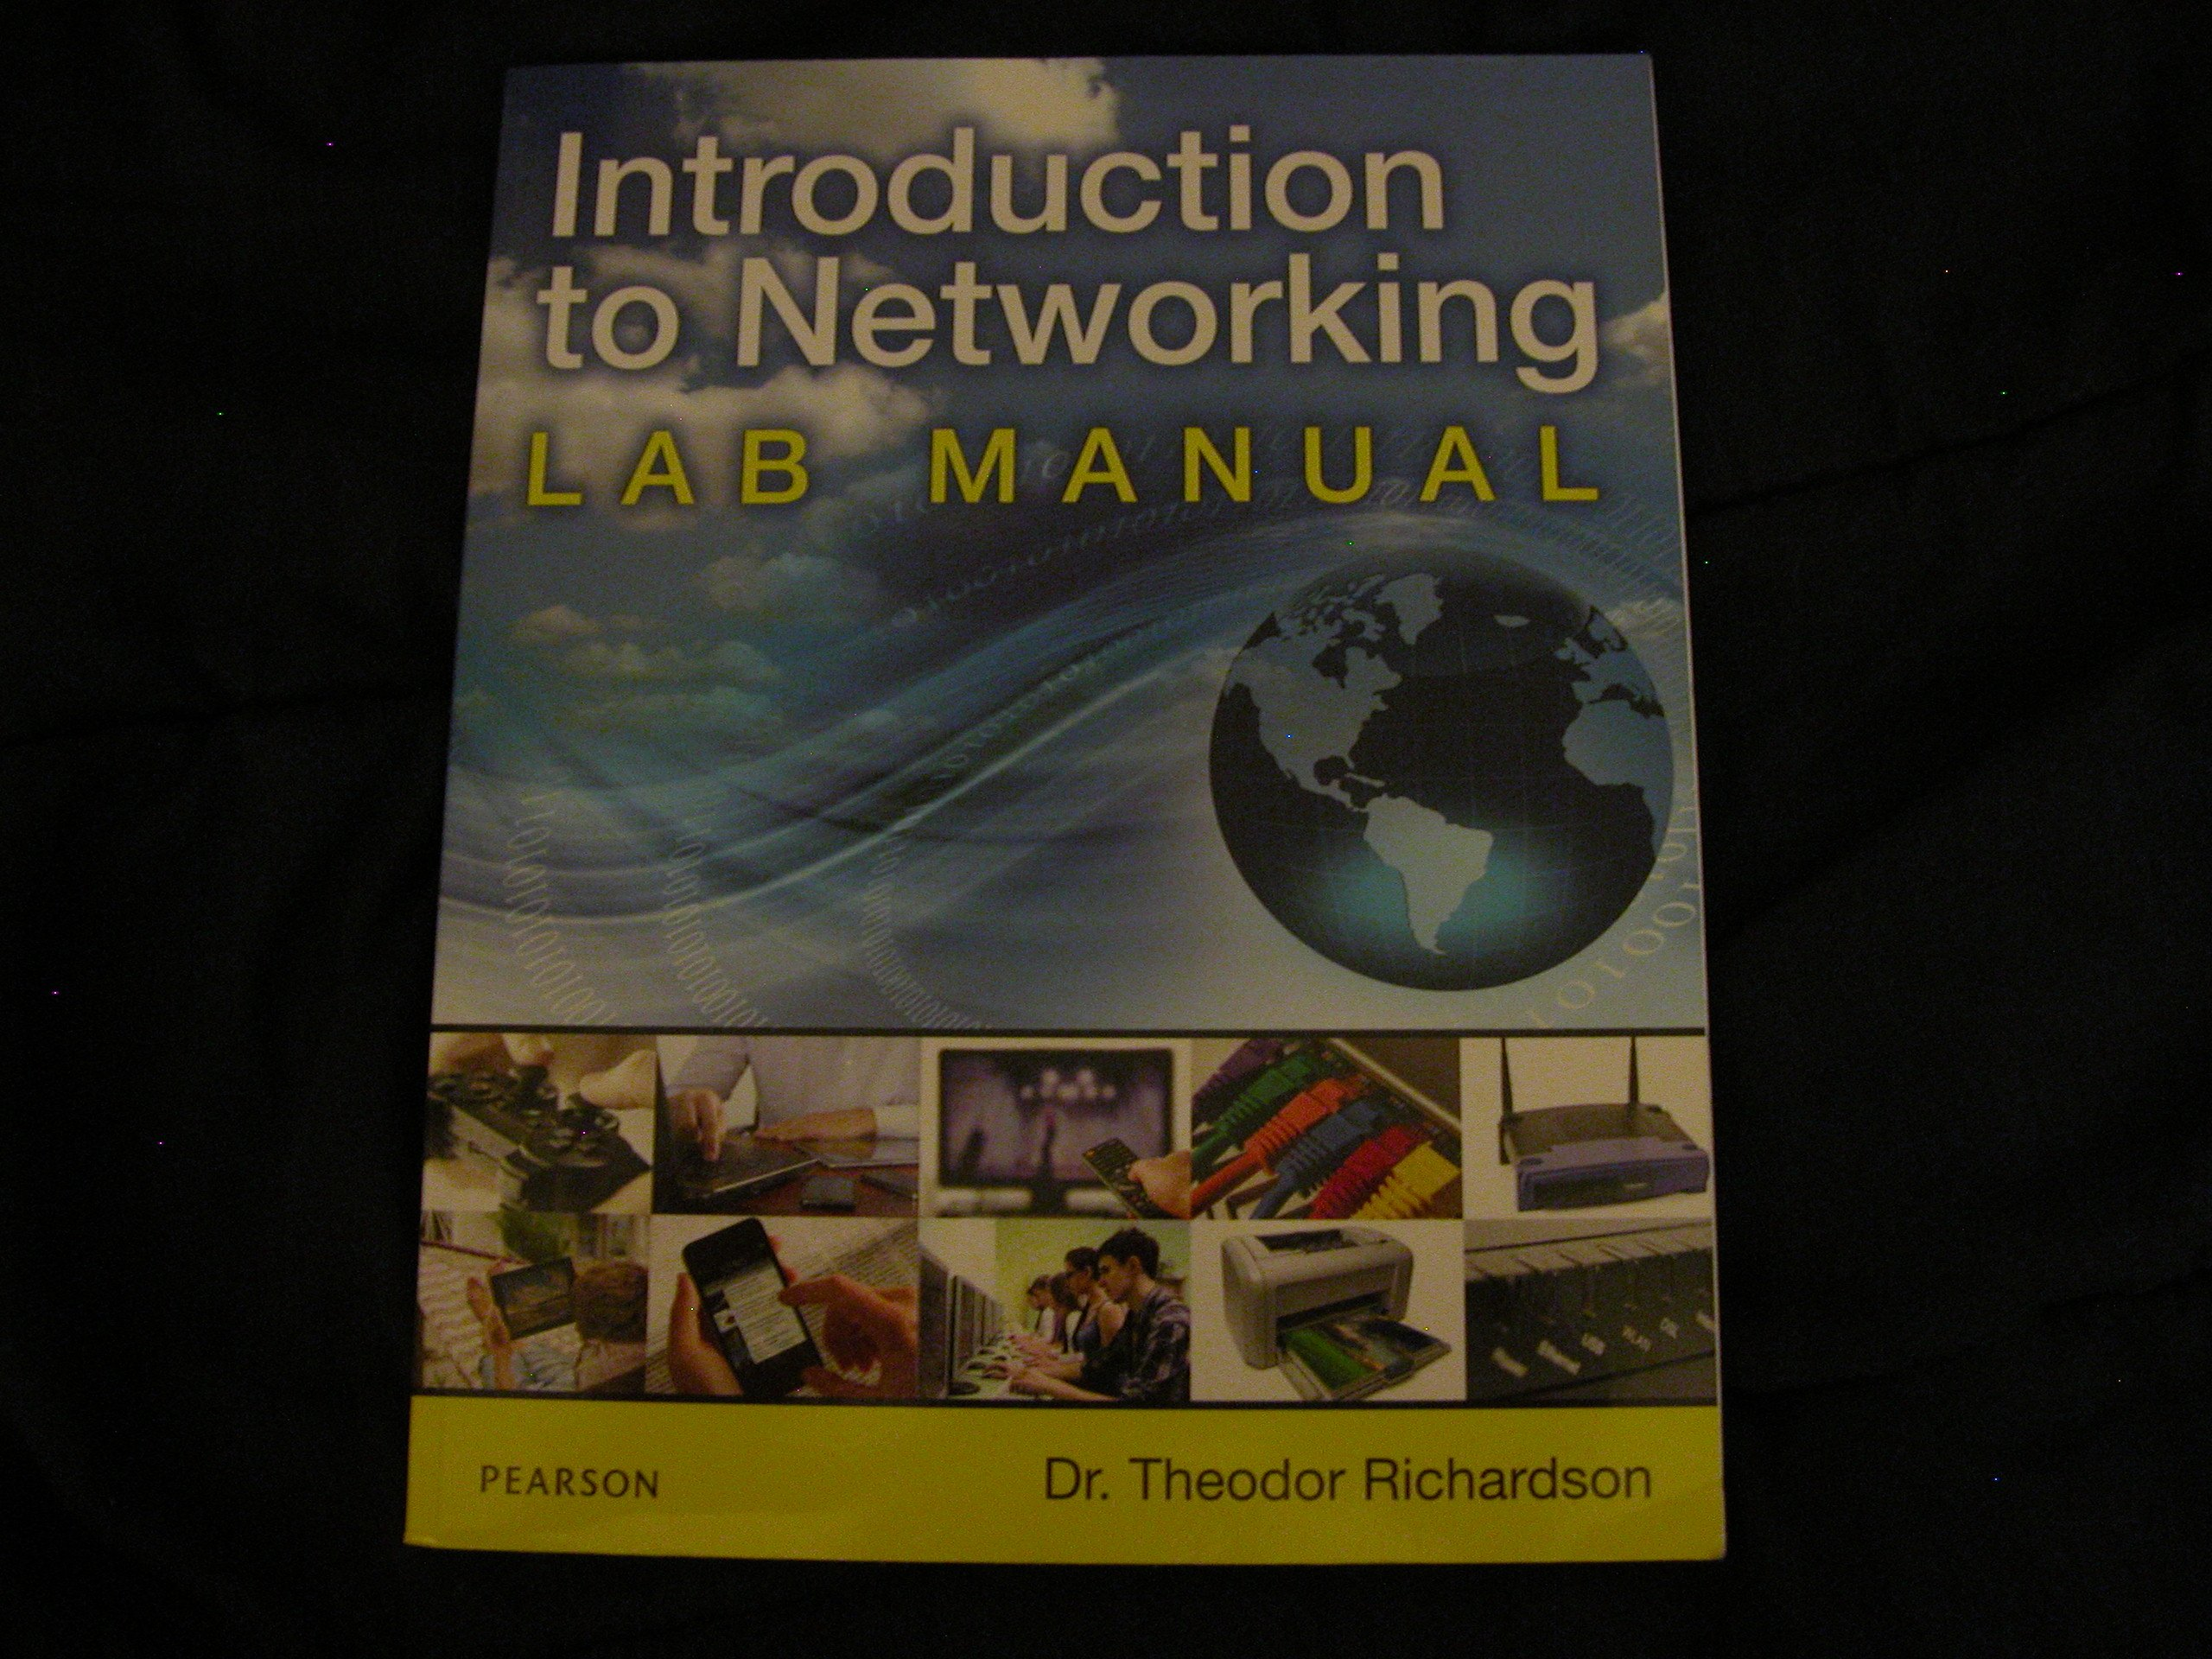 Download Introduction to Networking Lab Manual PEARSON ebook